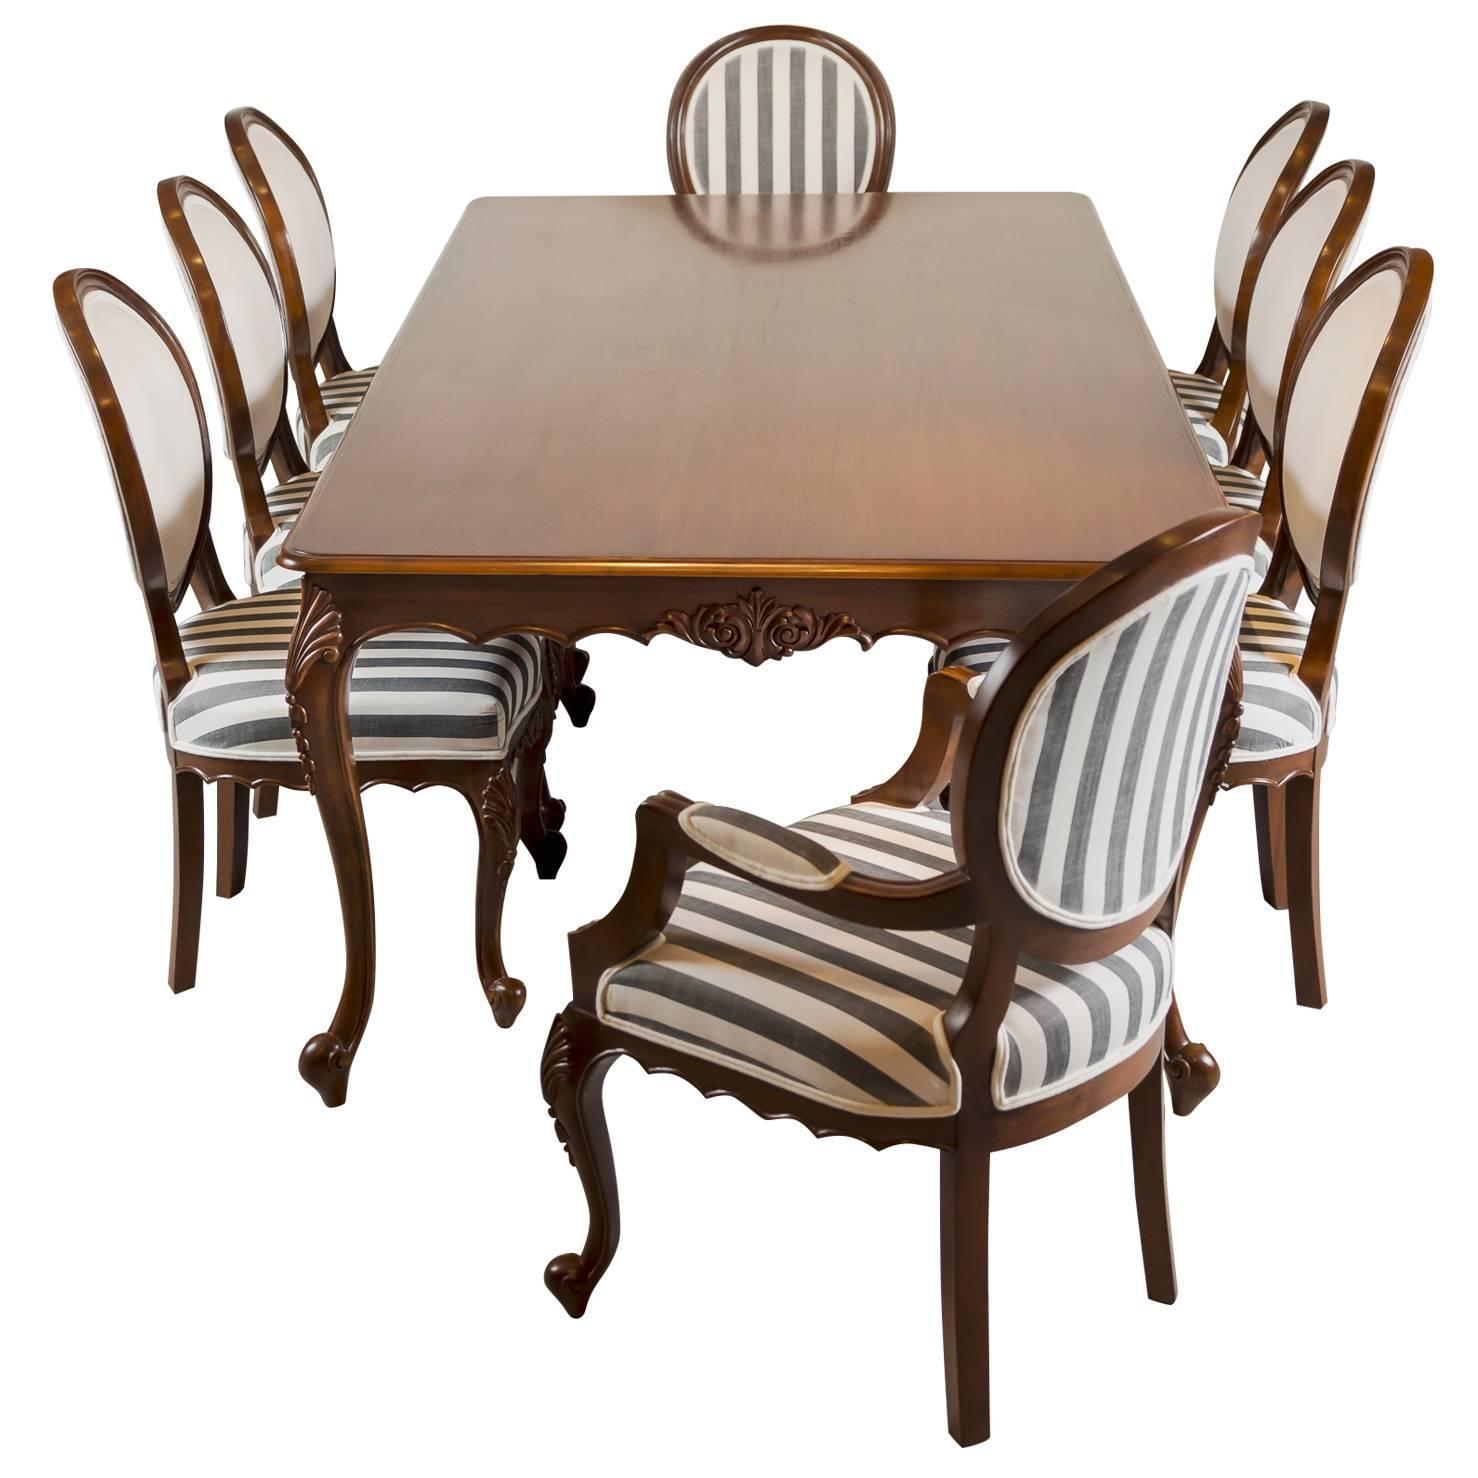 Antique Anglo Indian Teak Wood Dining Table With Eight Chairs For Sale At  1stdibs